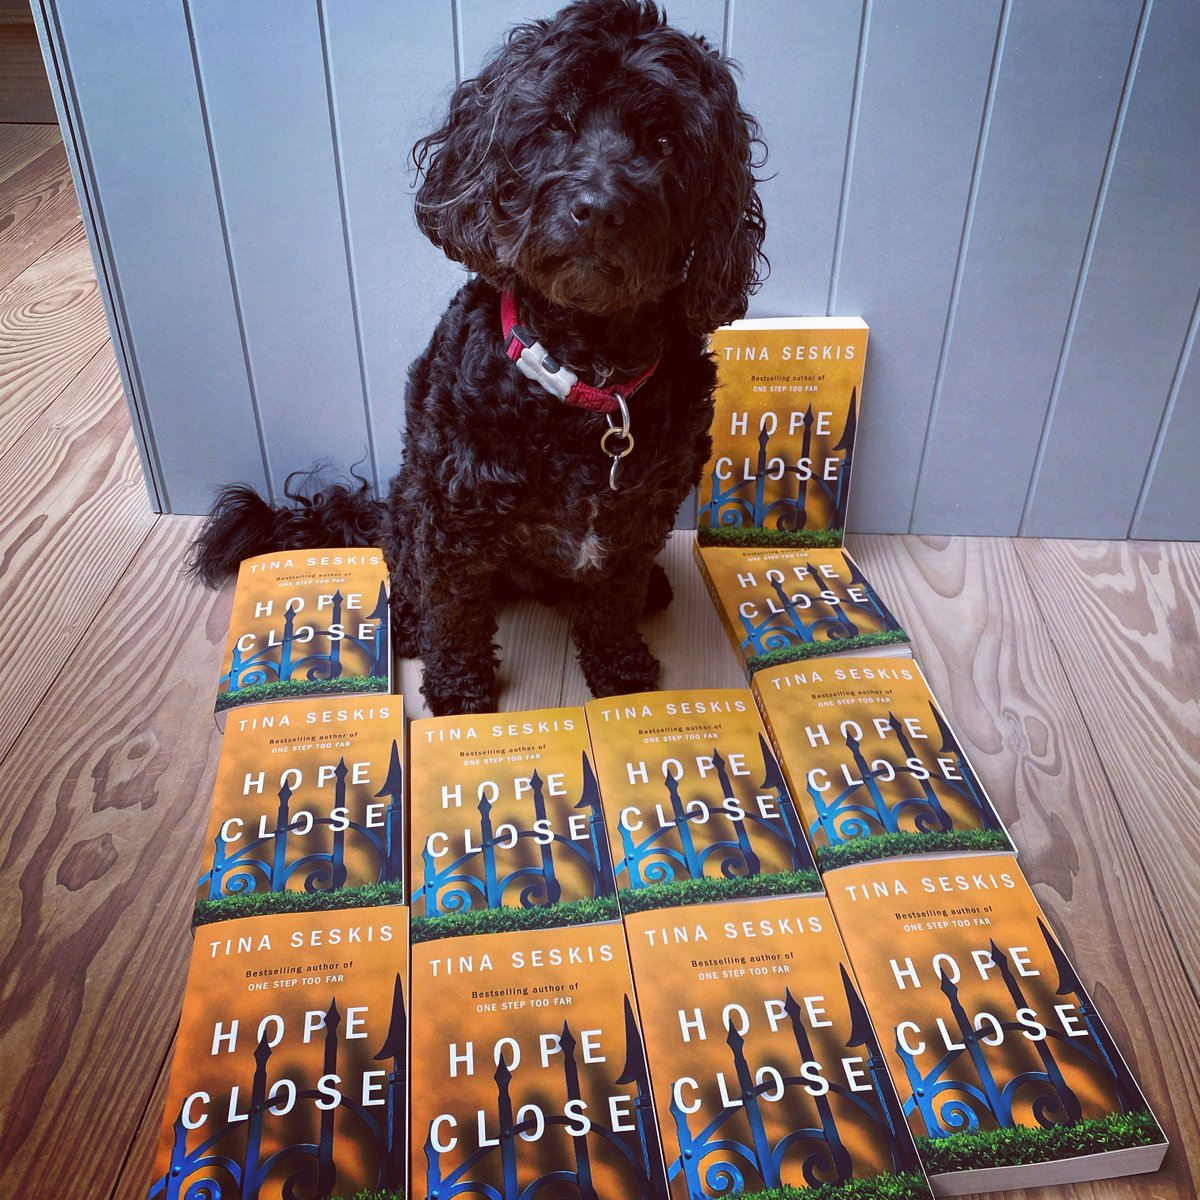 Guess my dog's age!! Winner to the nearest year and/or months gets a signed copy of HOPE CLOSE, as well as a mystery prize. Friends need not apply. xx  #Competition #NewBook #BookWorm #bookblogger #book #dogsoftwitter #dogtraining #n19 #thriller #hope #BeKind #Kindle #prizes